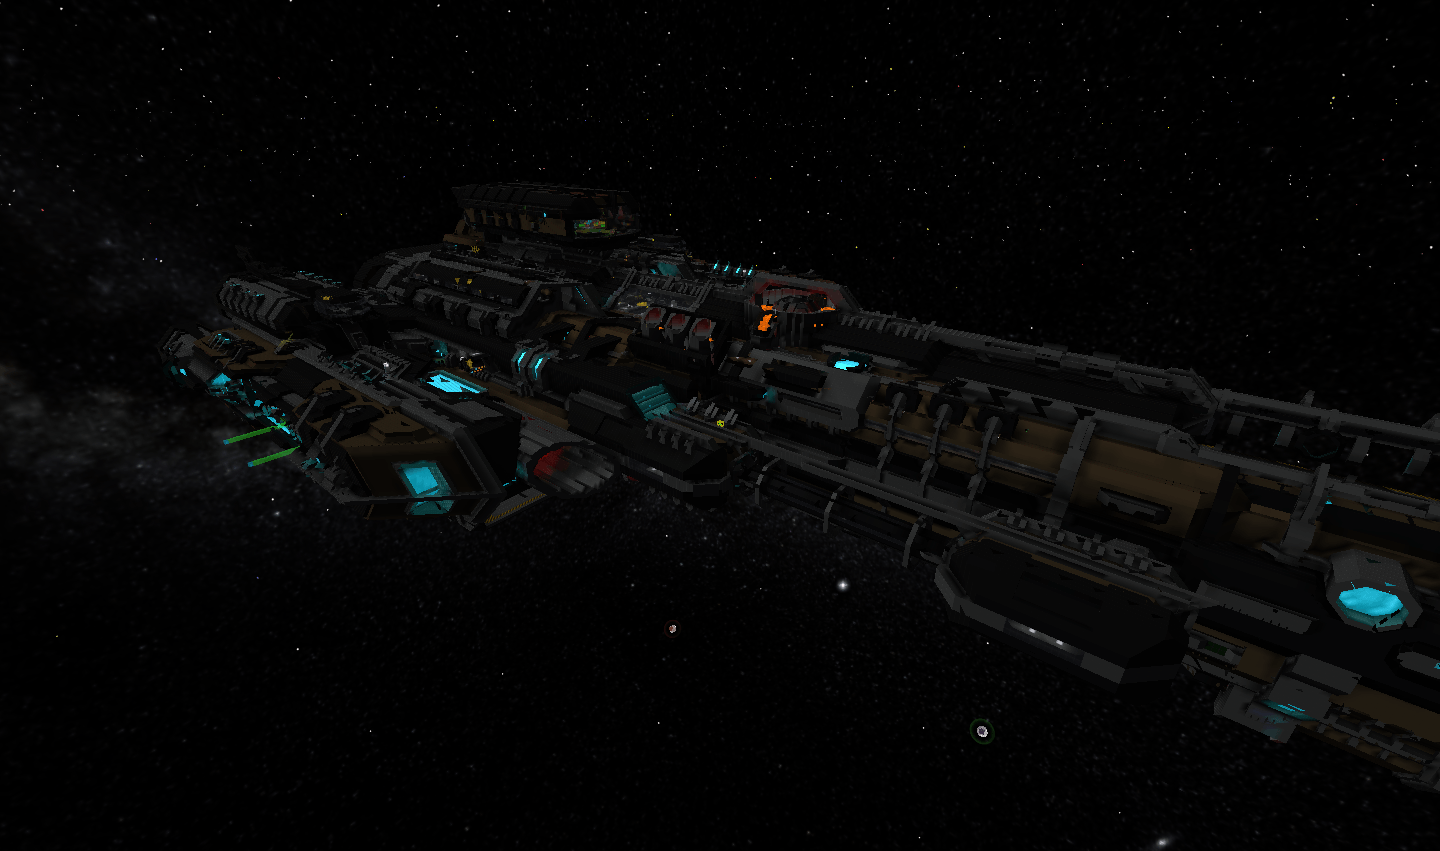 starmade-screenshot-0020.png